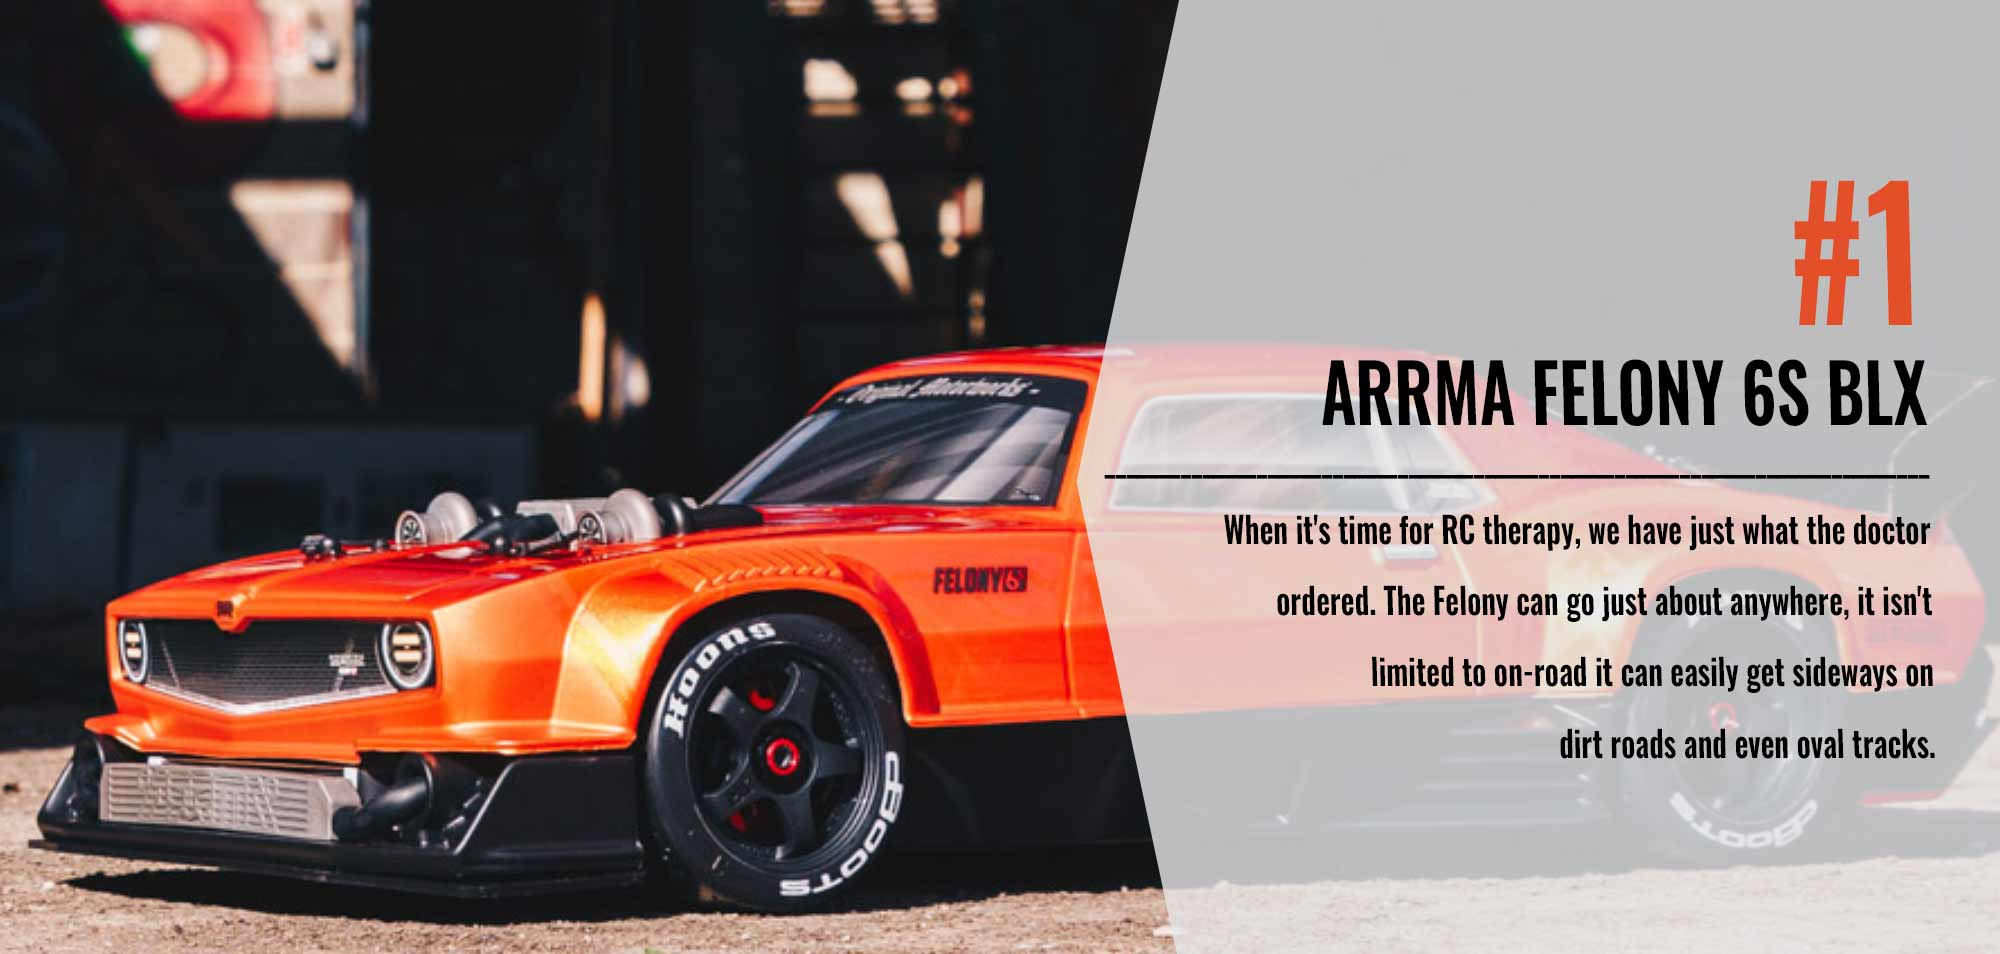 Number One in our Top 10 List - Arrma Felony